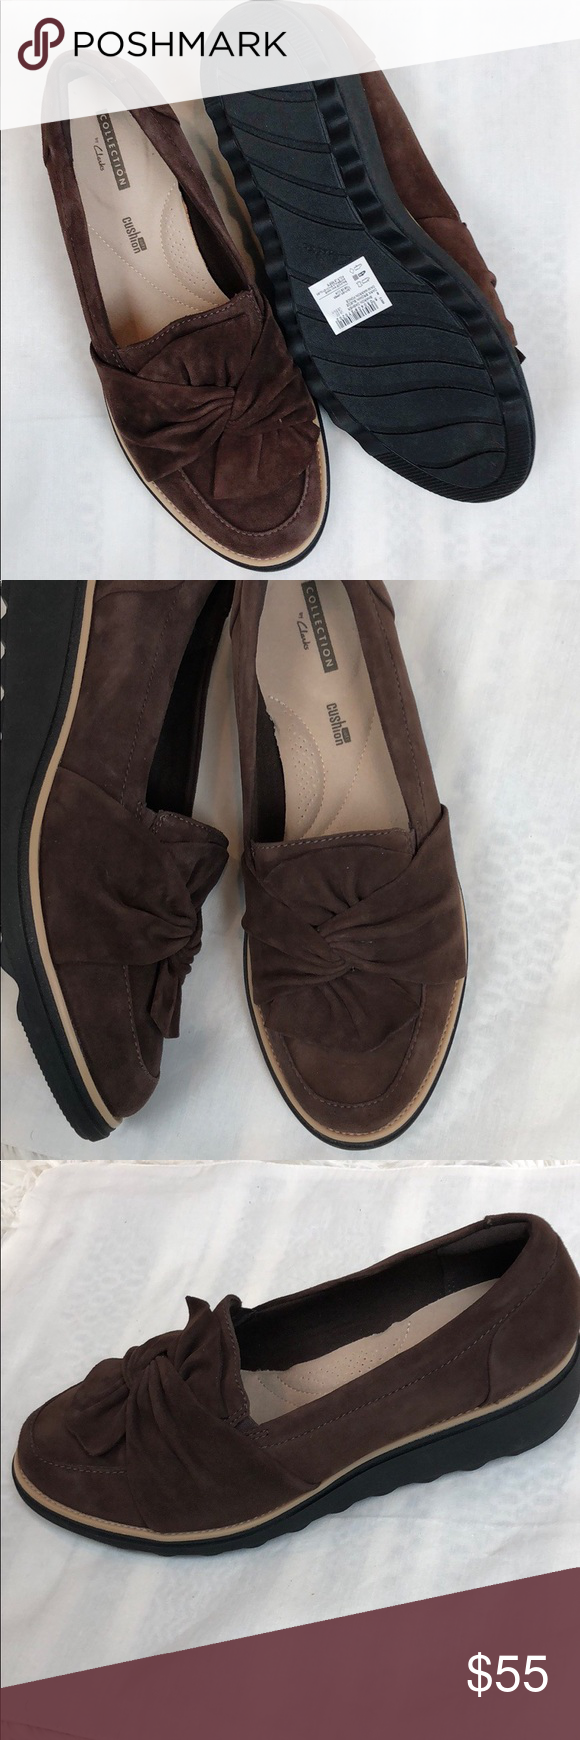 5a01cdbc765 Clark s Collection Sharon Dasher loafers NWOB Clark s dark brown suede  loafer. Knotted design on the toe top. Cushion insole. Black bottom Never  worn.